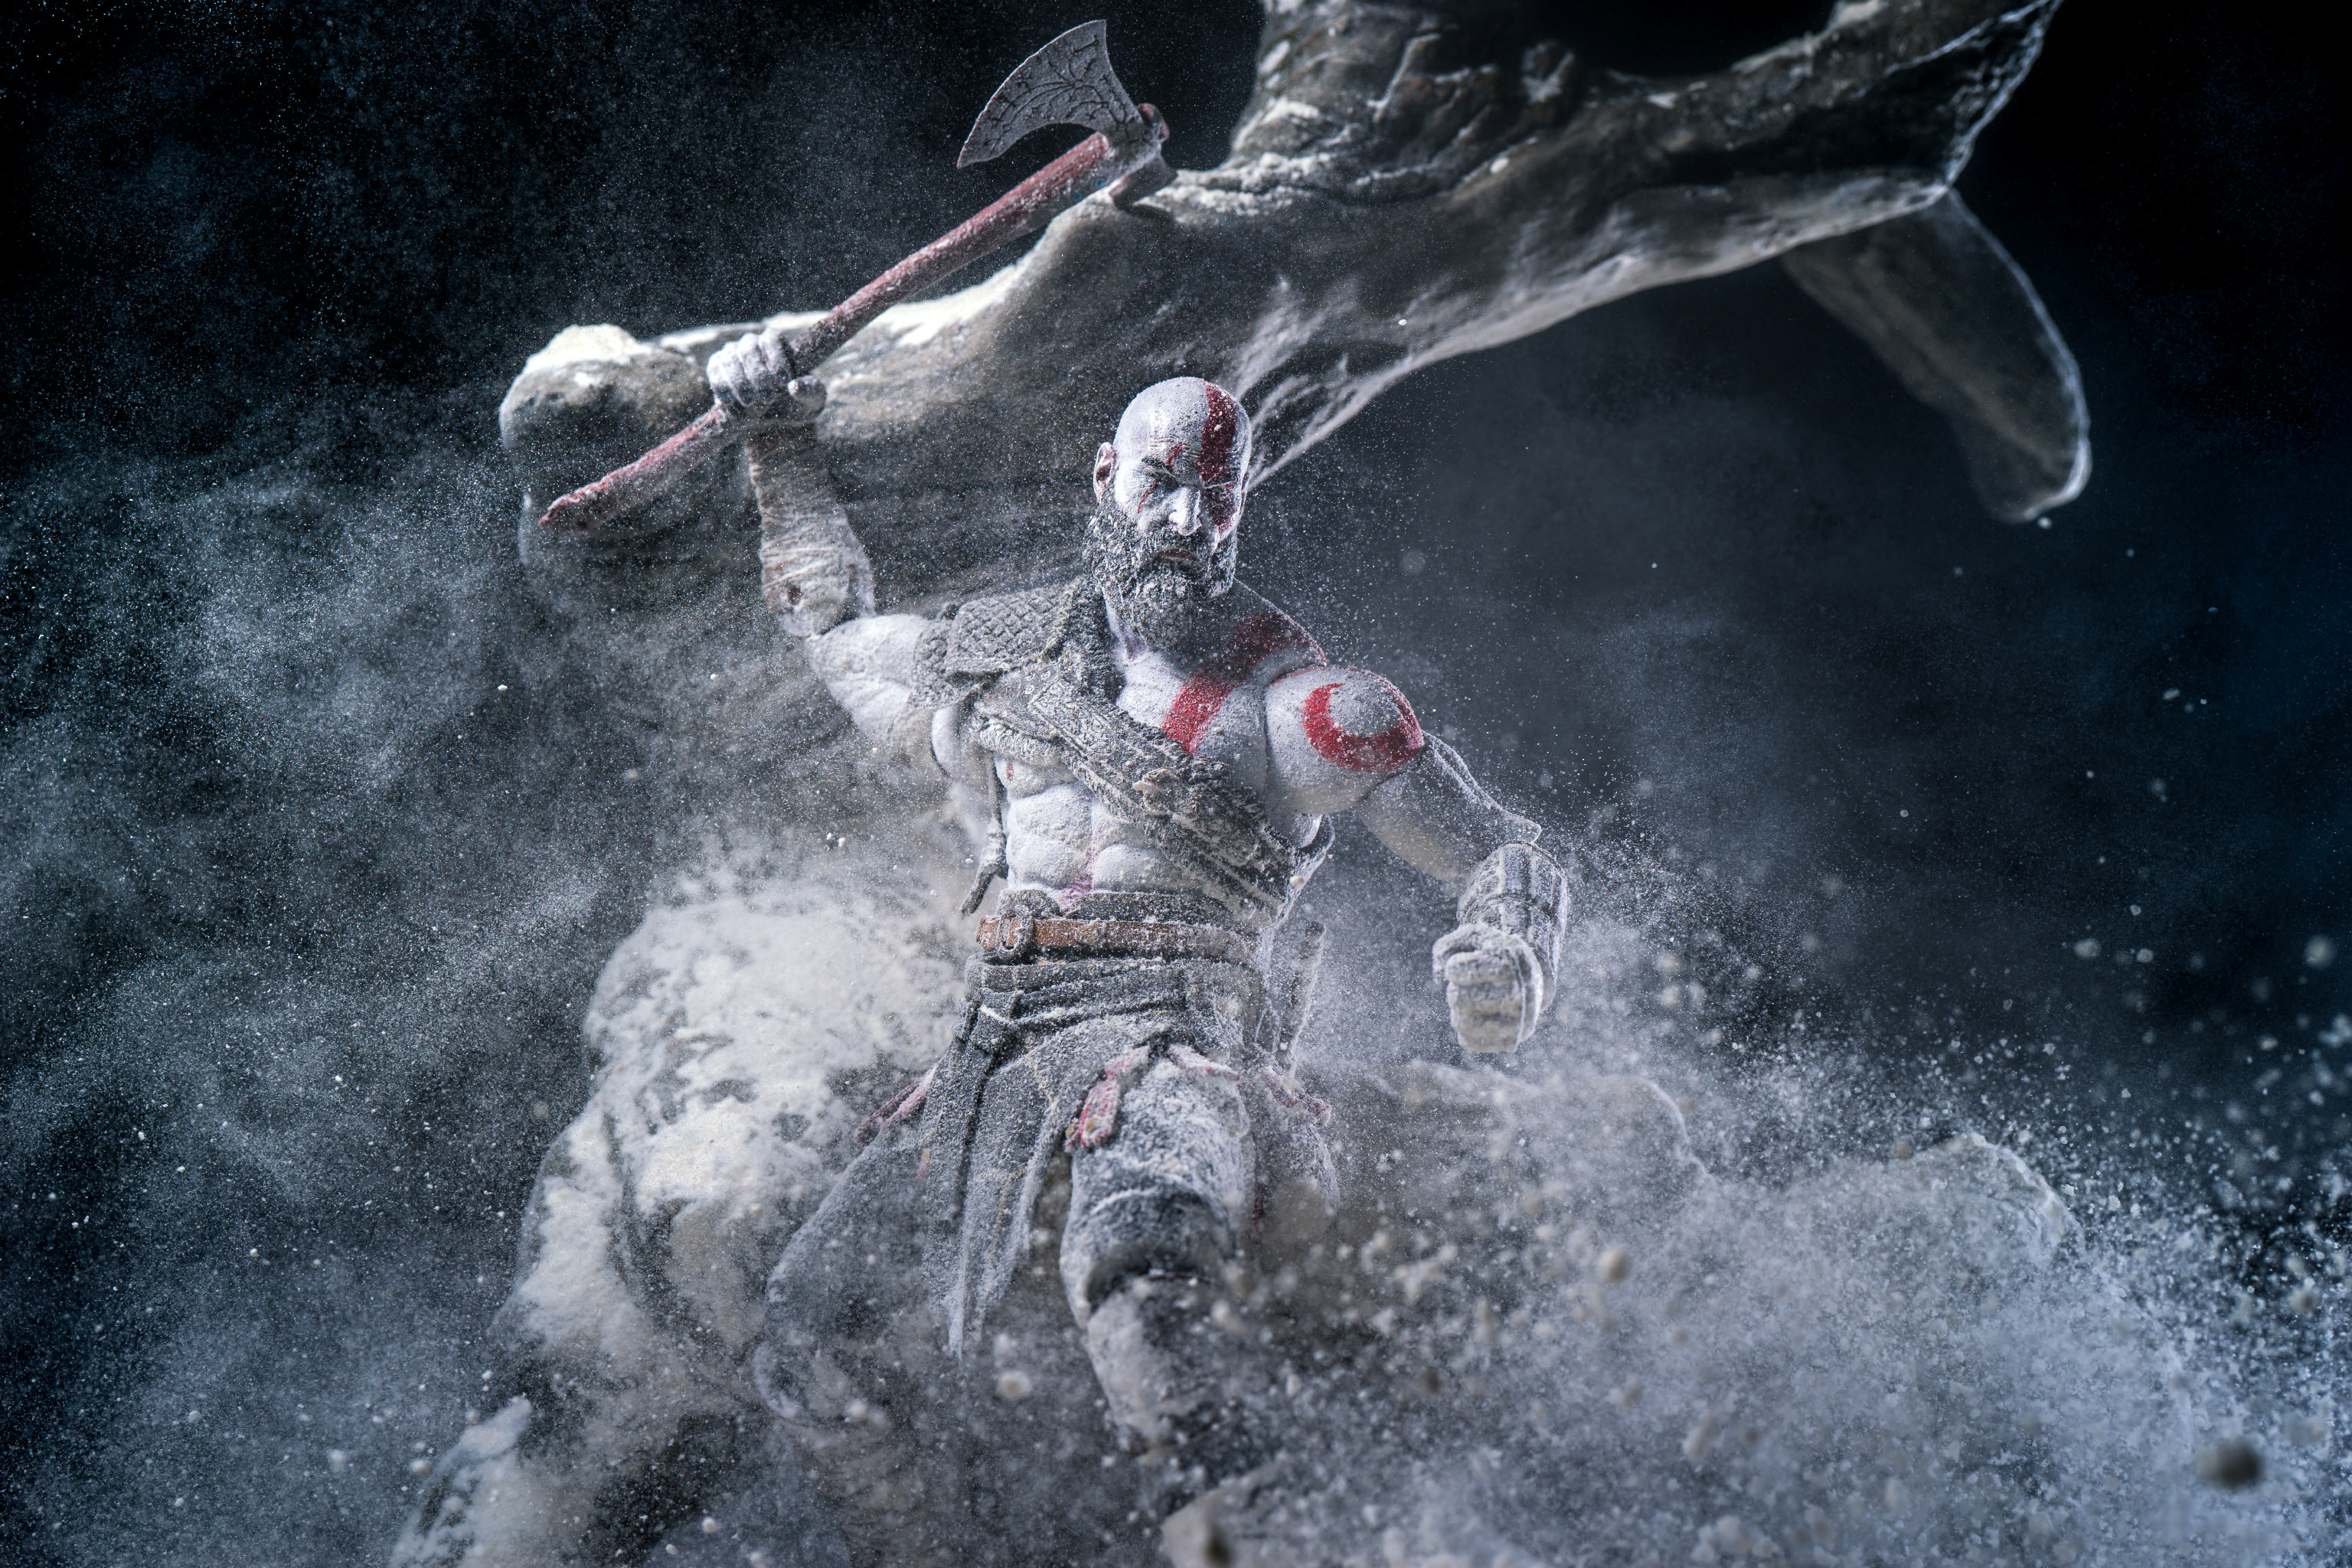 Kratos God Of War Video Game Hd Games 4k Wallpapers Images